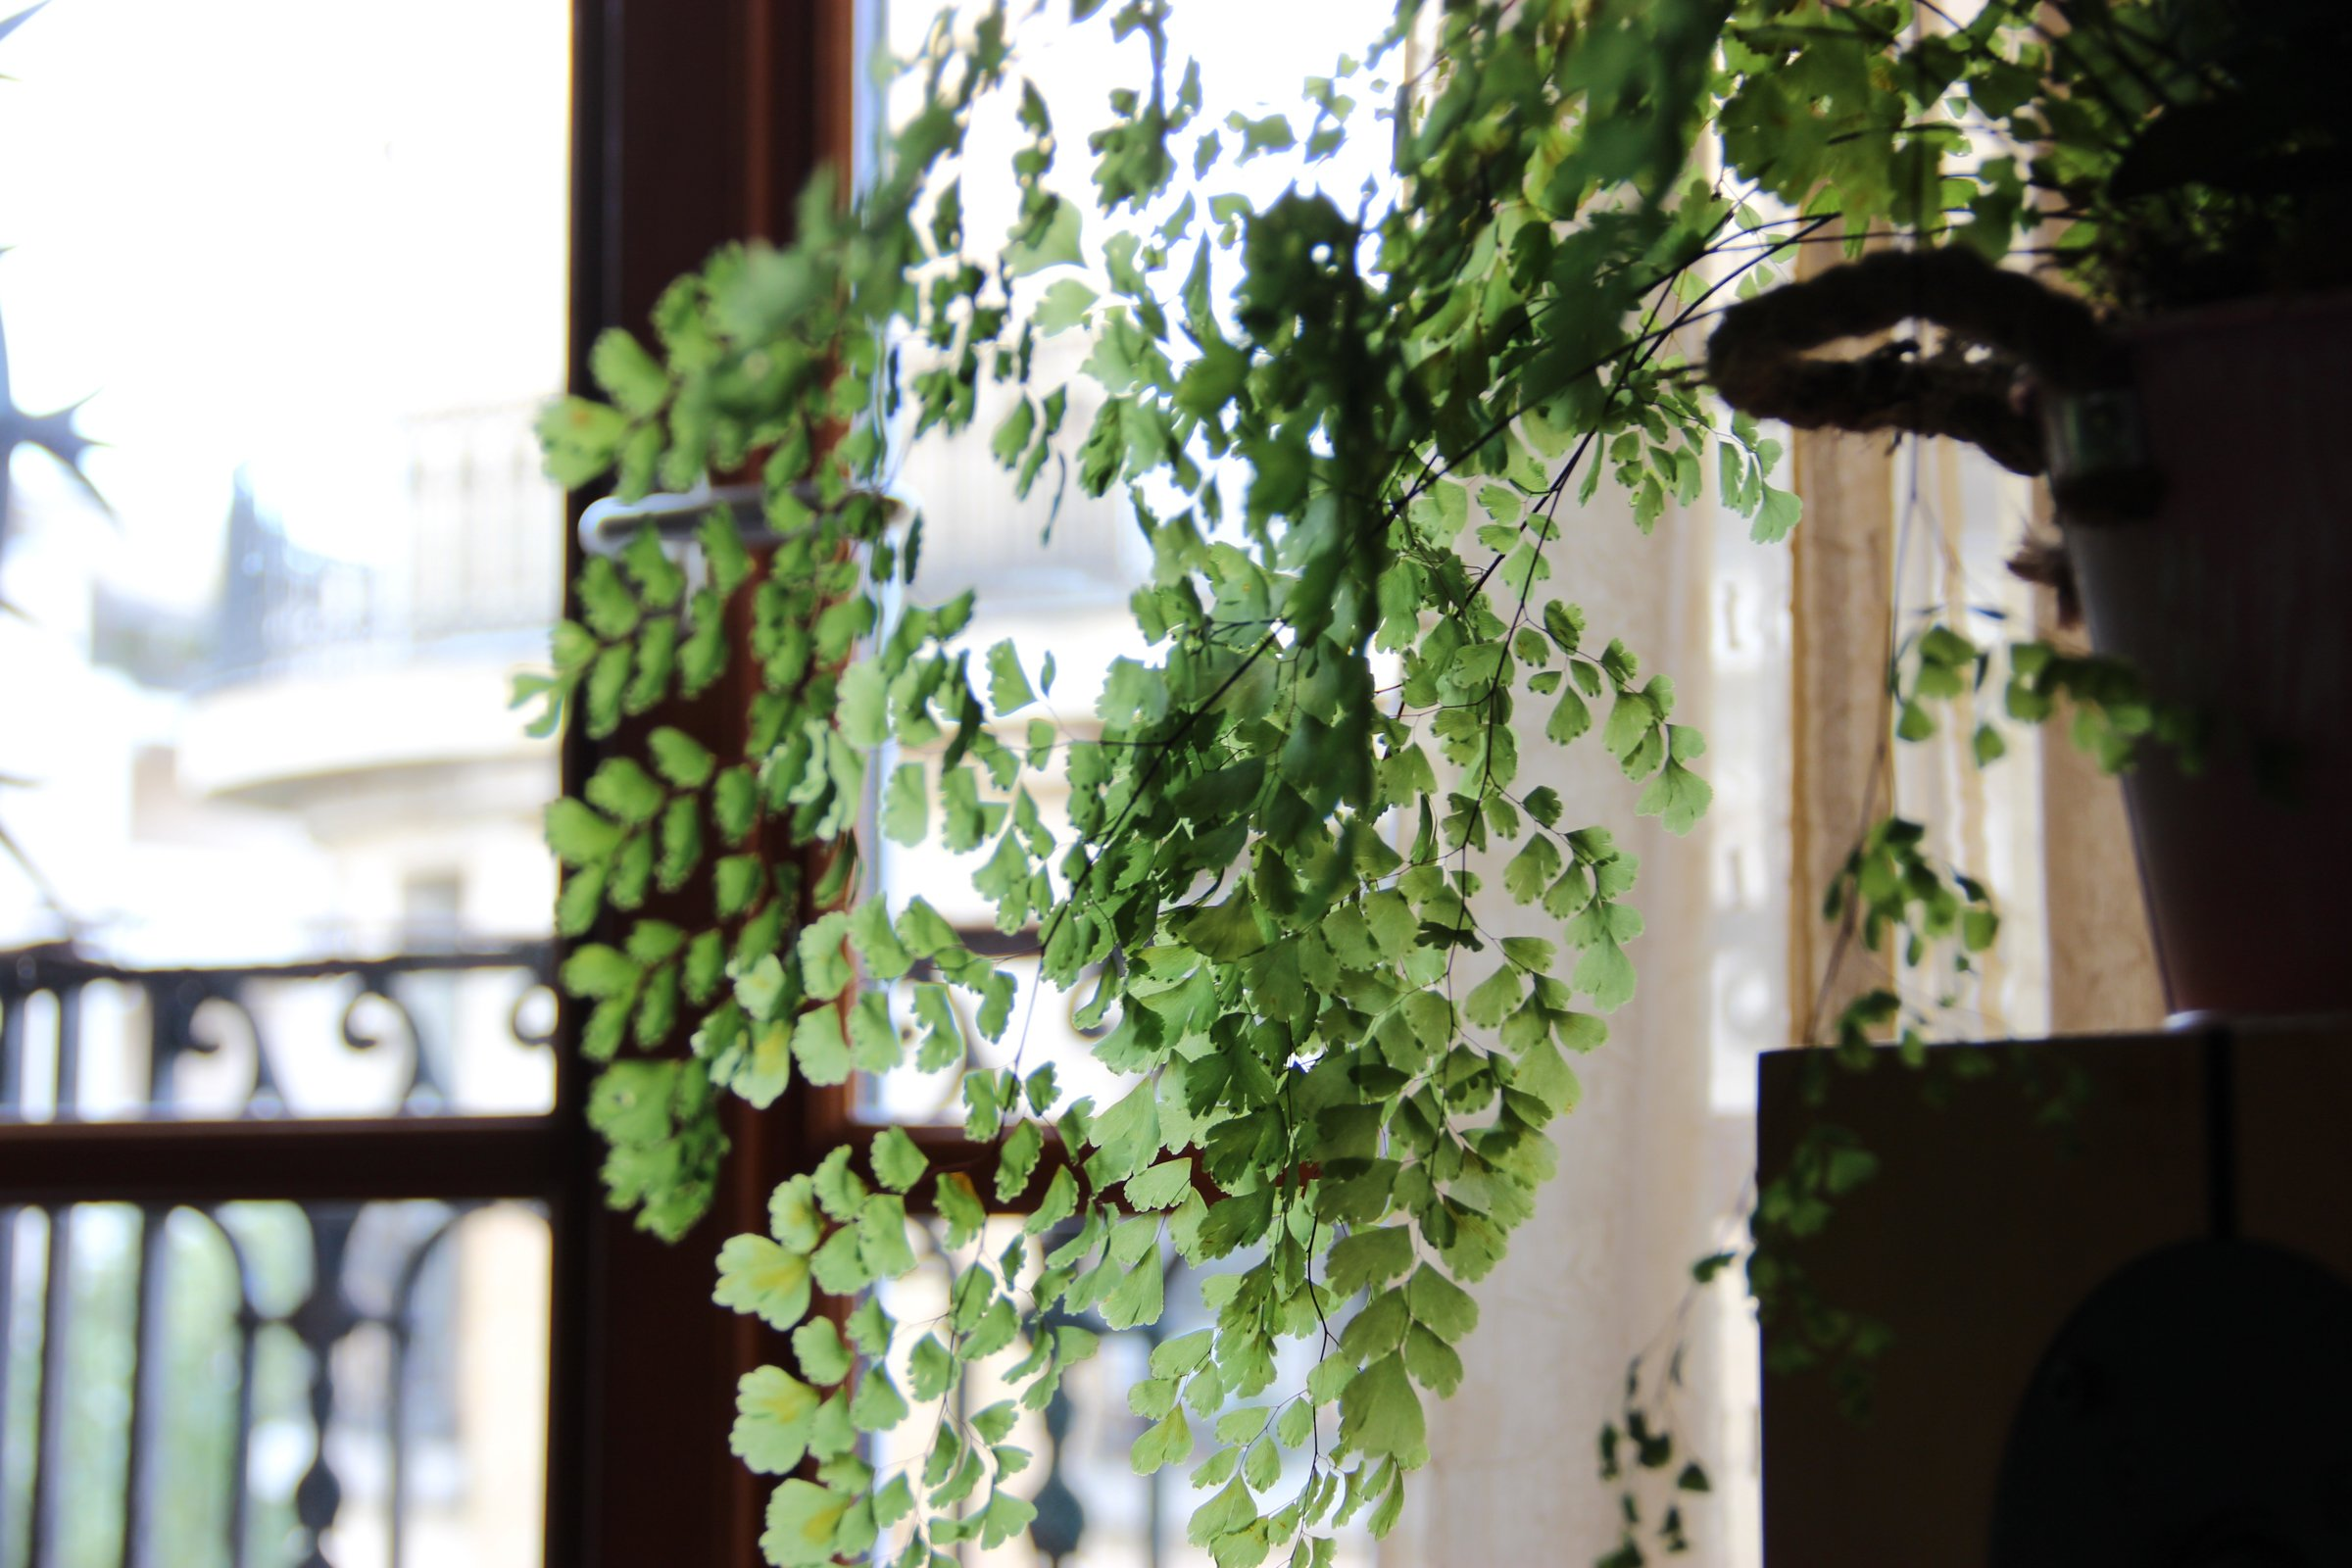 House Plant by Window